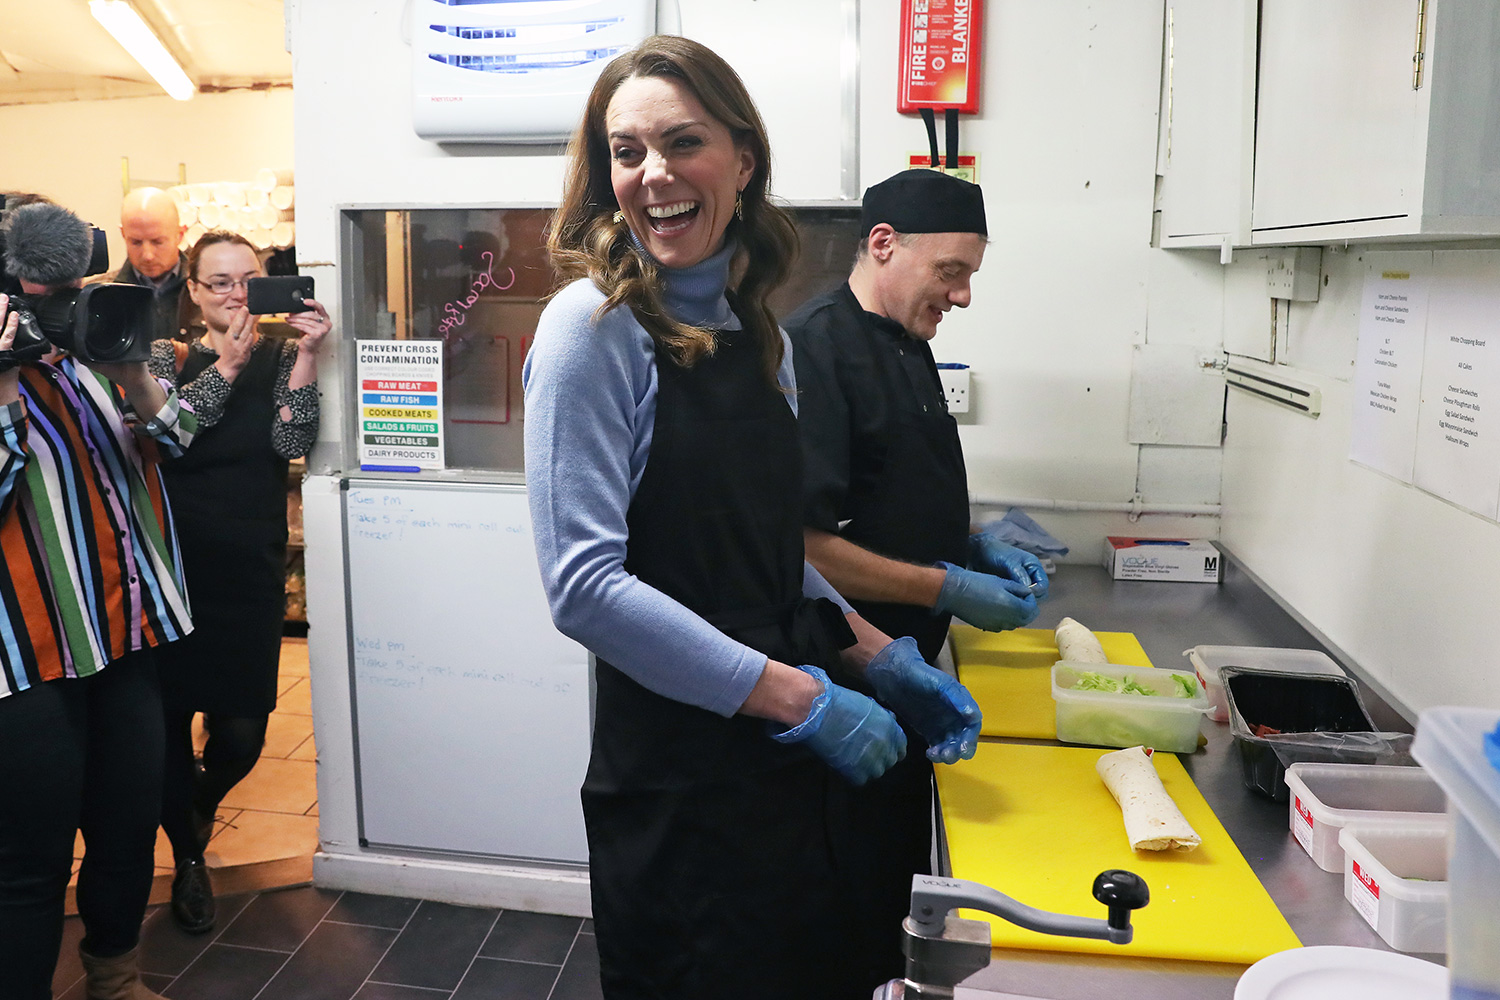 The Duchess of Cambridge, known as the Countess of Strathearn while in Scotland, speaks to users of the Social Bite cafe, during a visit to Aberdeen, to meet with locals for her Early Childhood survey.